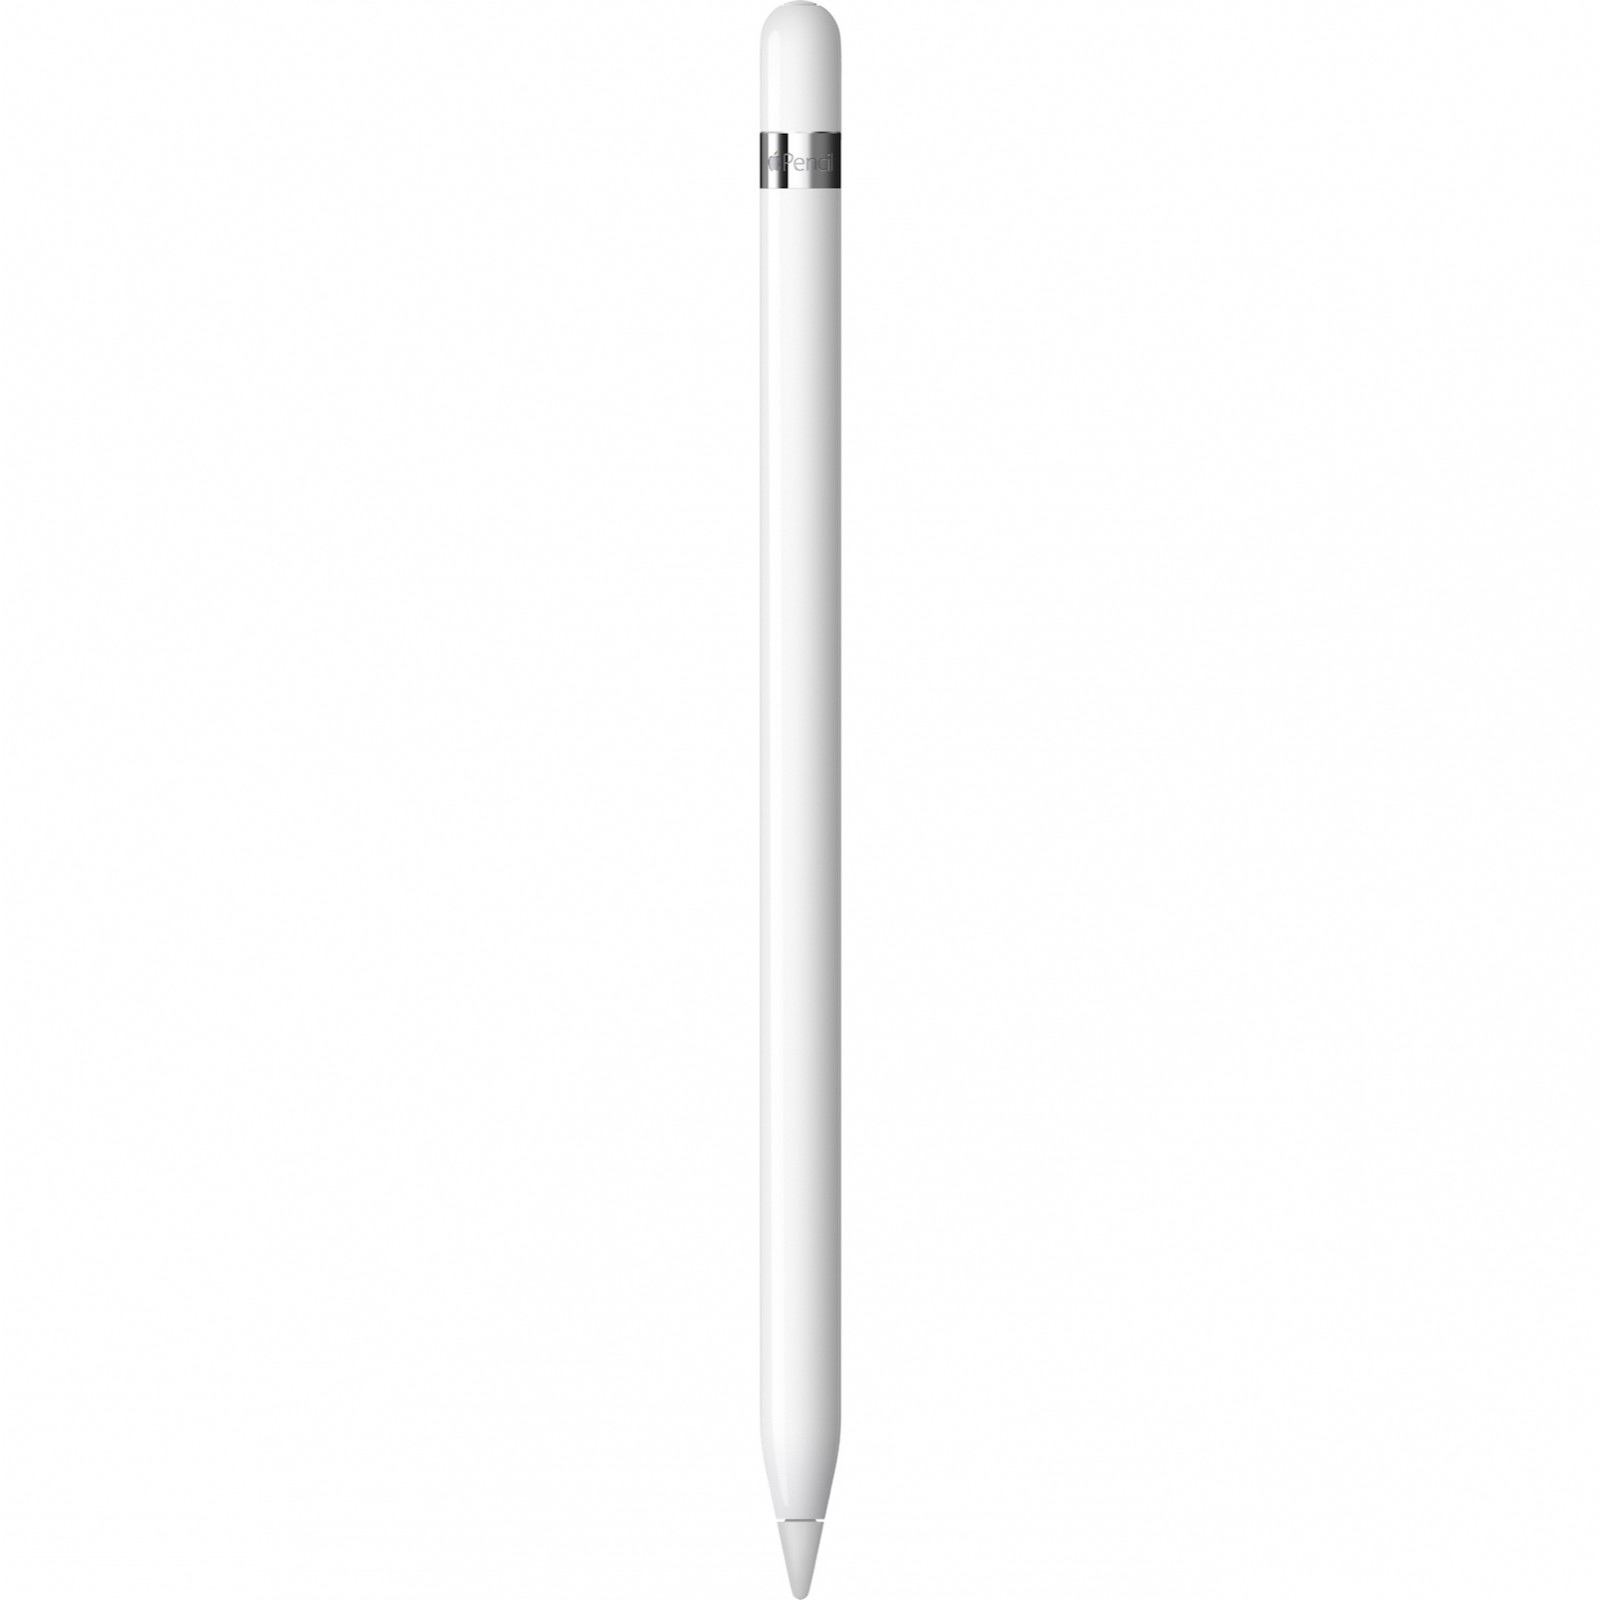 APPLE PENCIL IPAD PRO MK0C2LZ/A